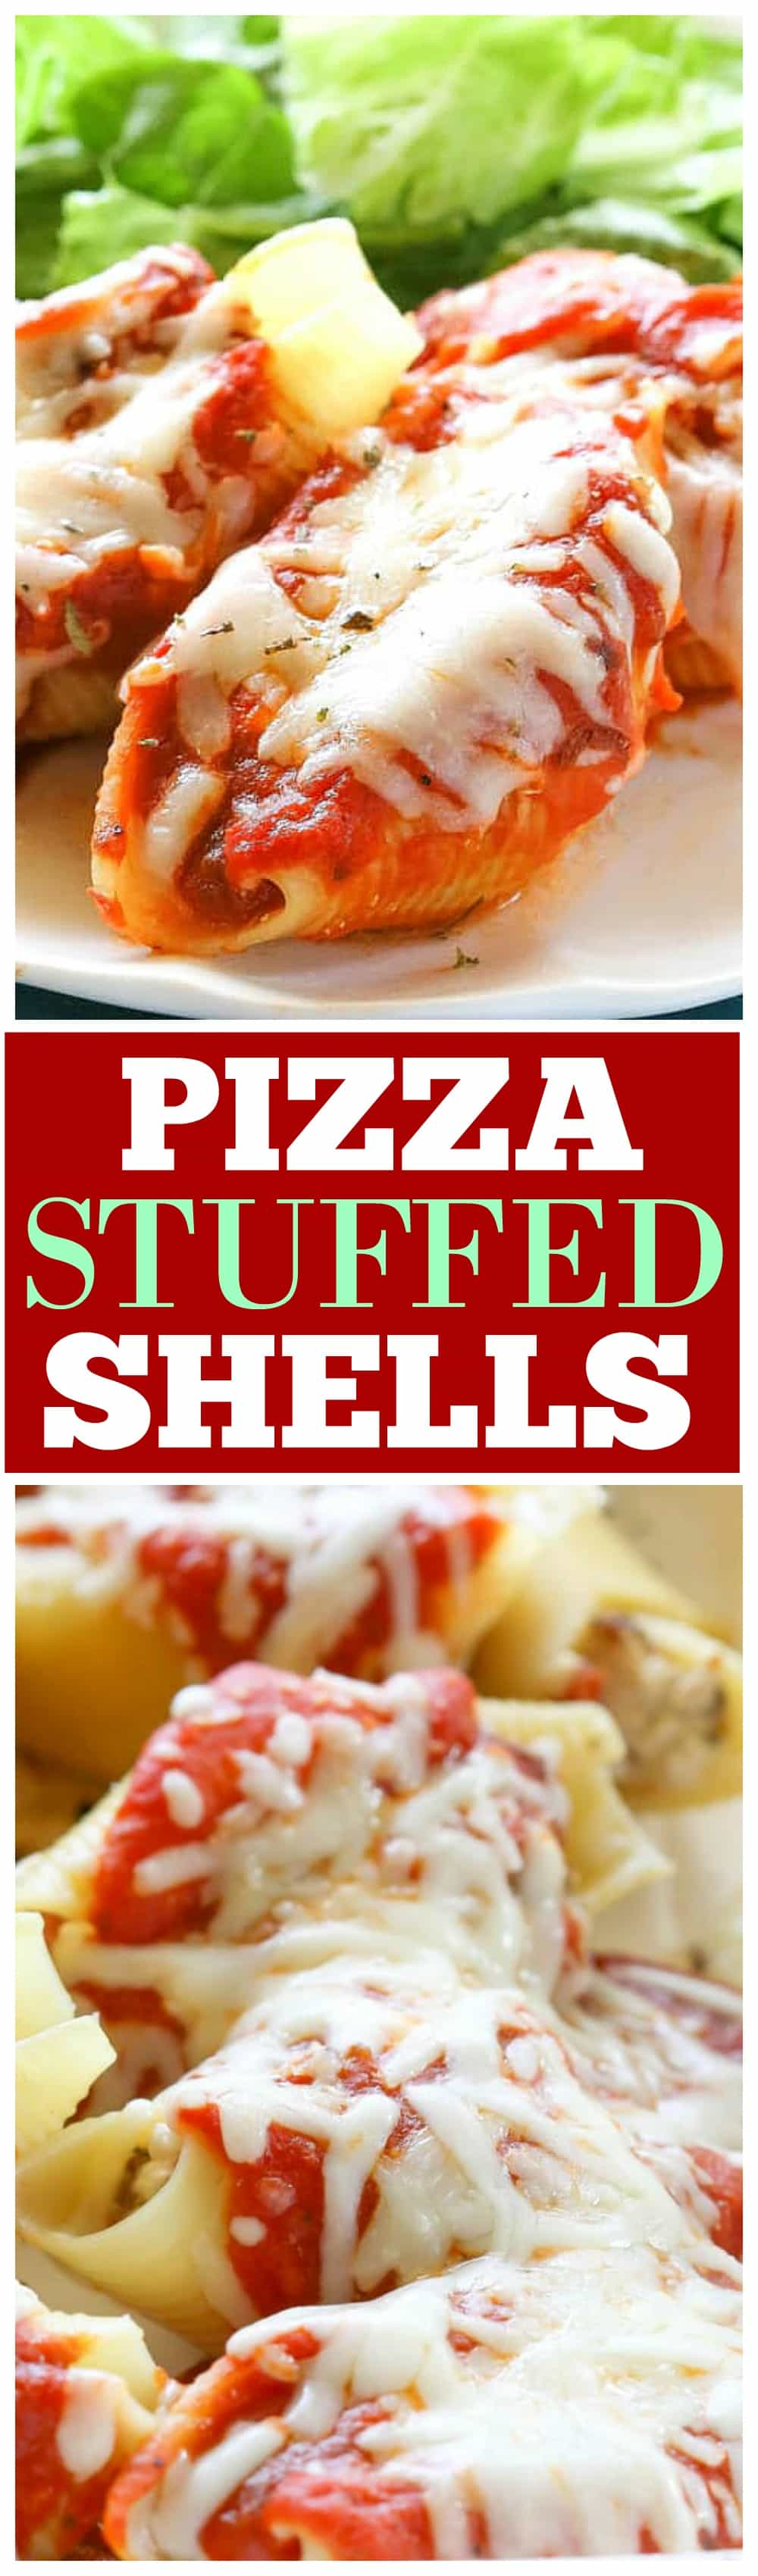 These Pizza Stuffed Shells are jumbo pasta shells stuffed with sausage, pepperoni, and cheese. Put your favorite toppings in! They can be made ahead and frozen for later. These are a total crowd pleaser. #pizza #stuffed #shells #recipe #italian #casseroles